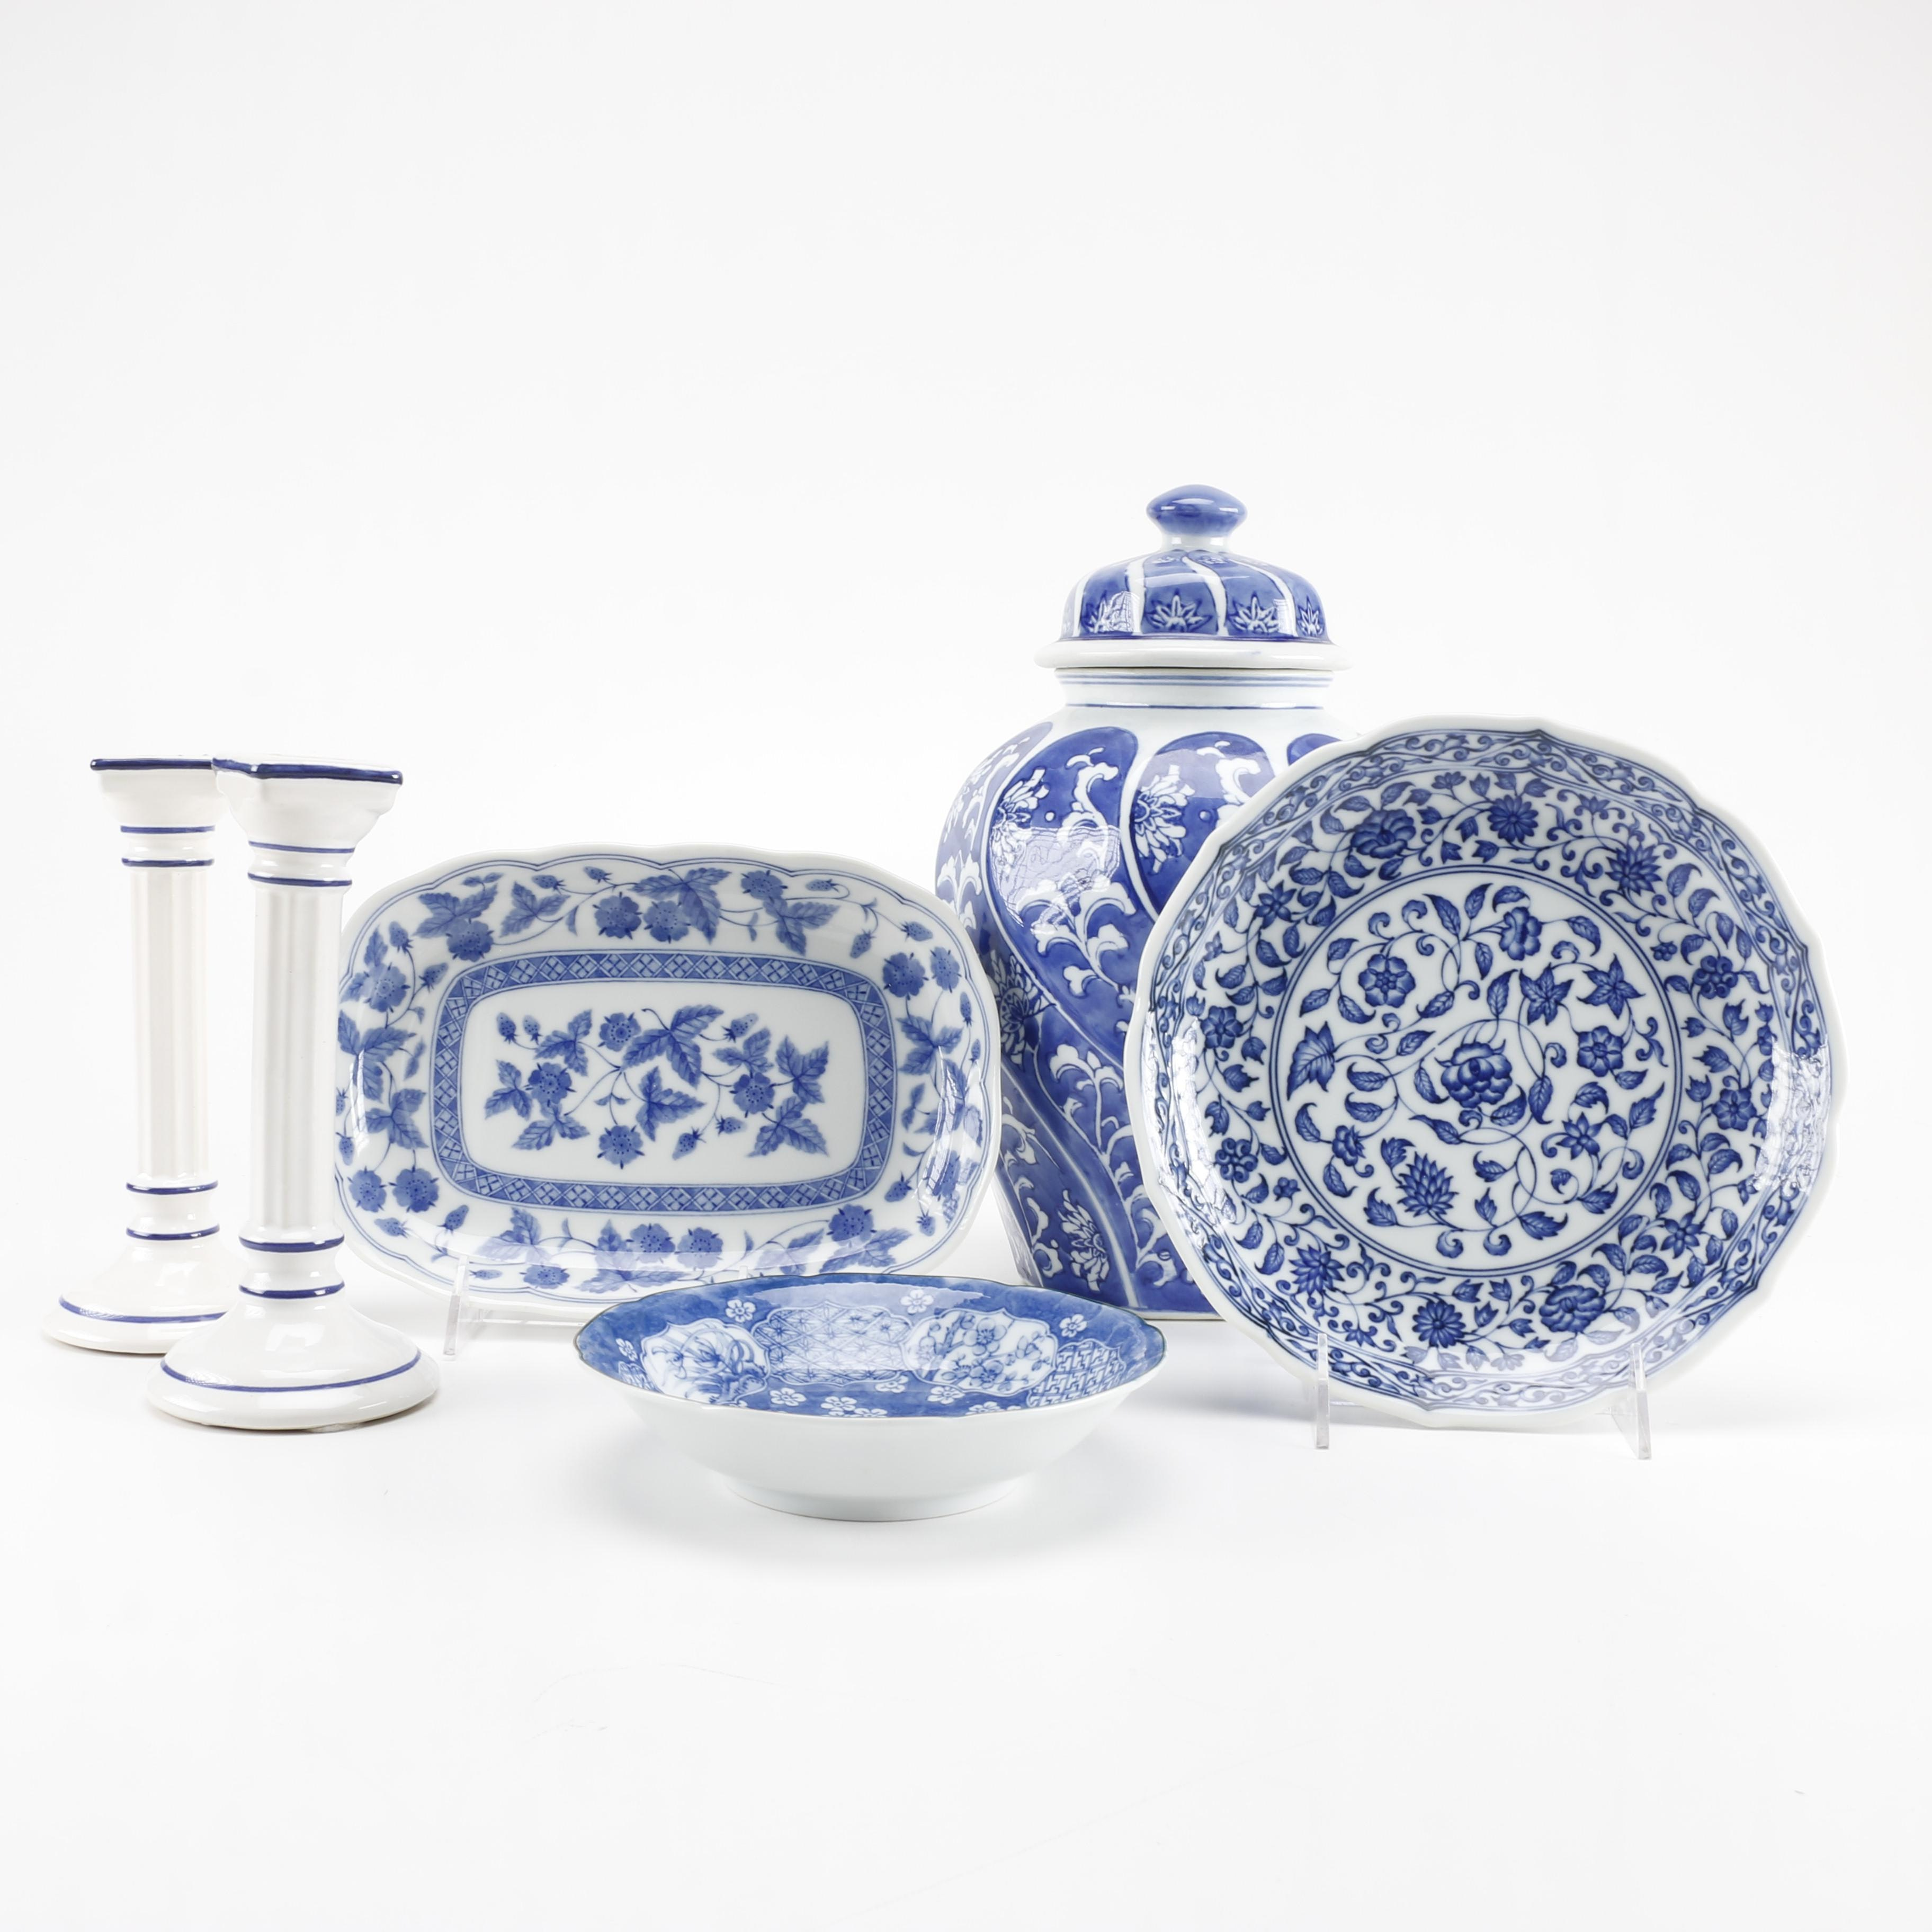 Collection of White and Blue China From Japan